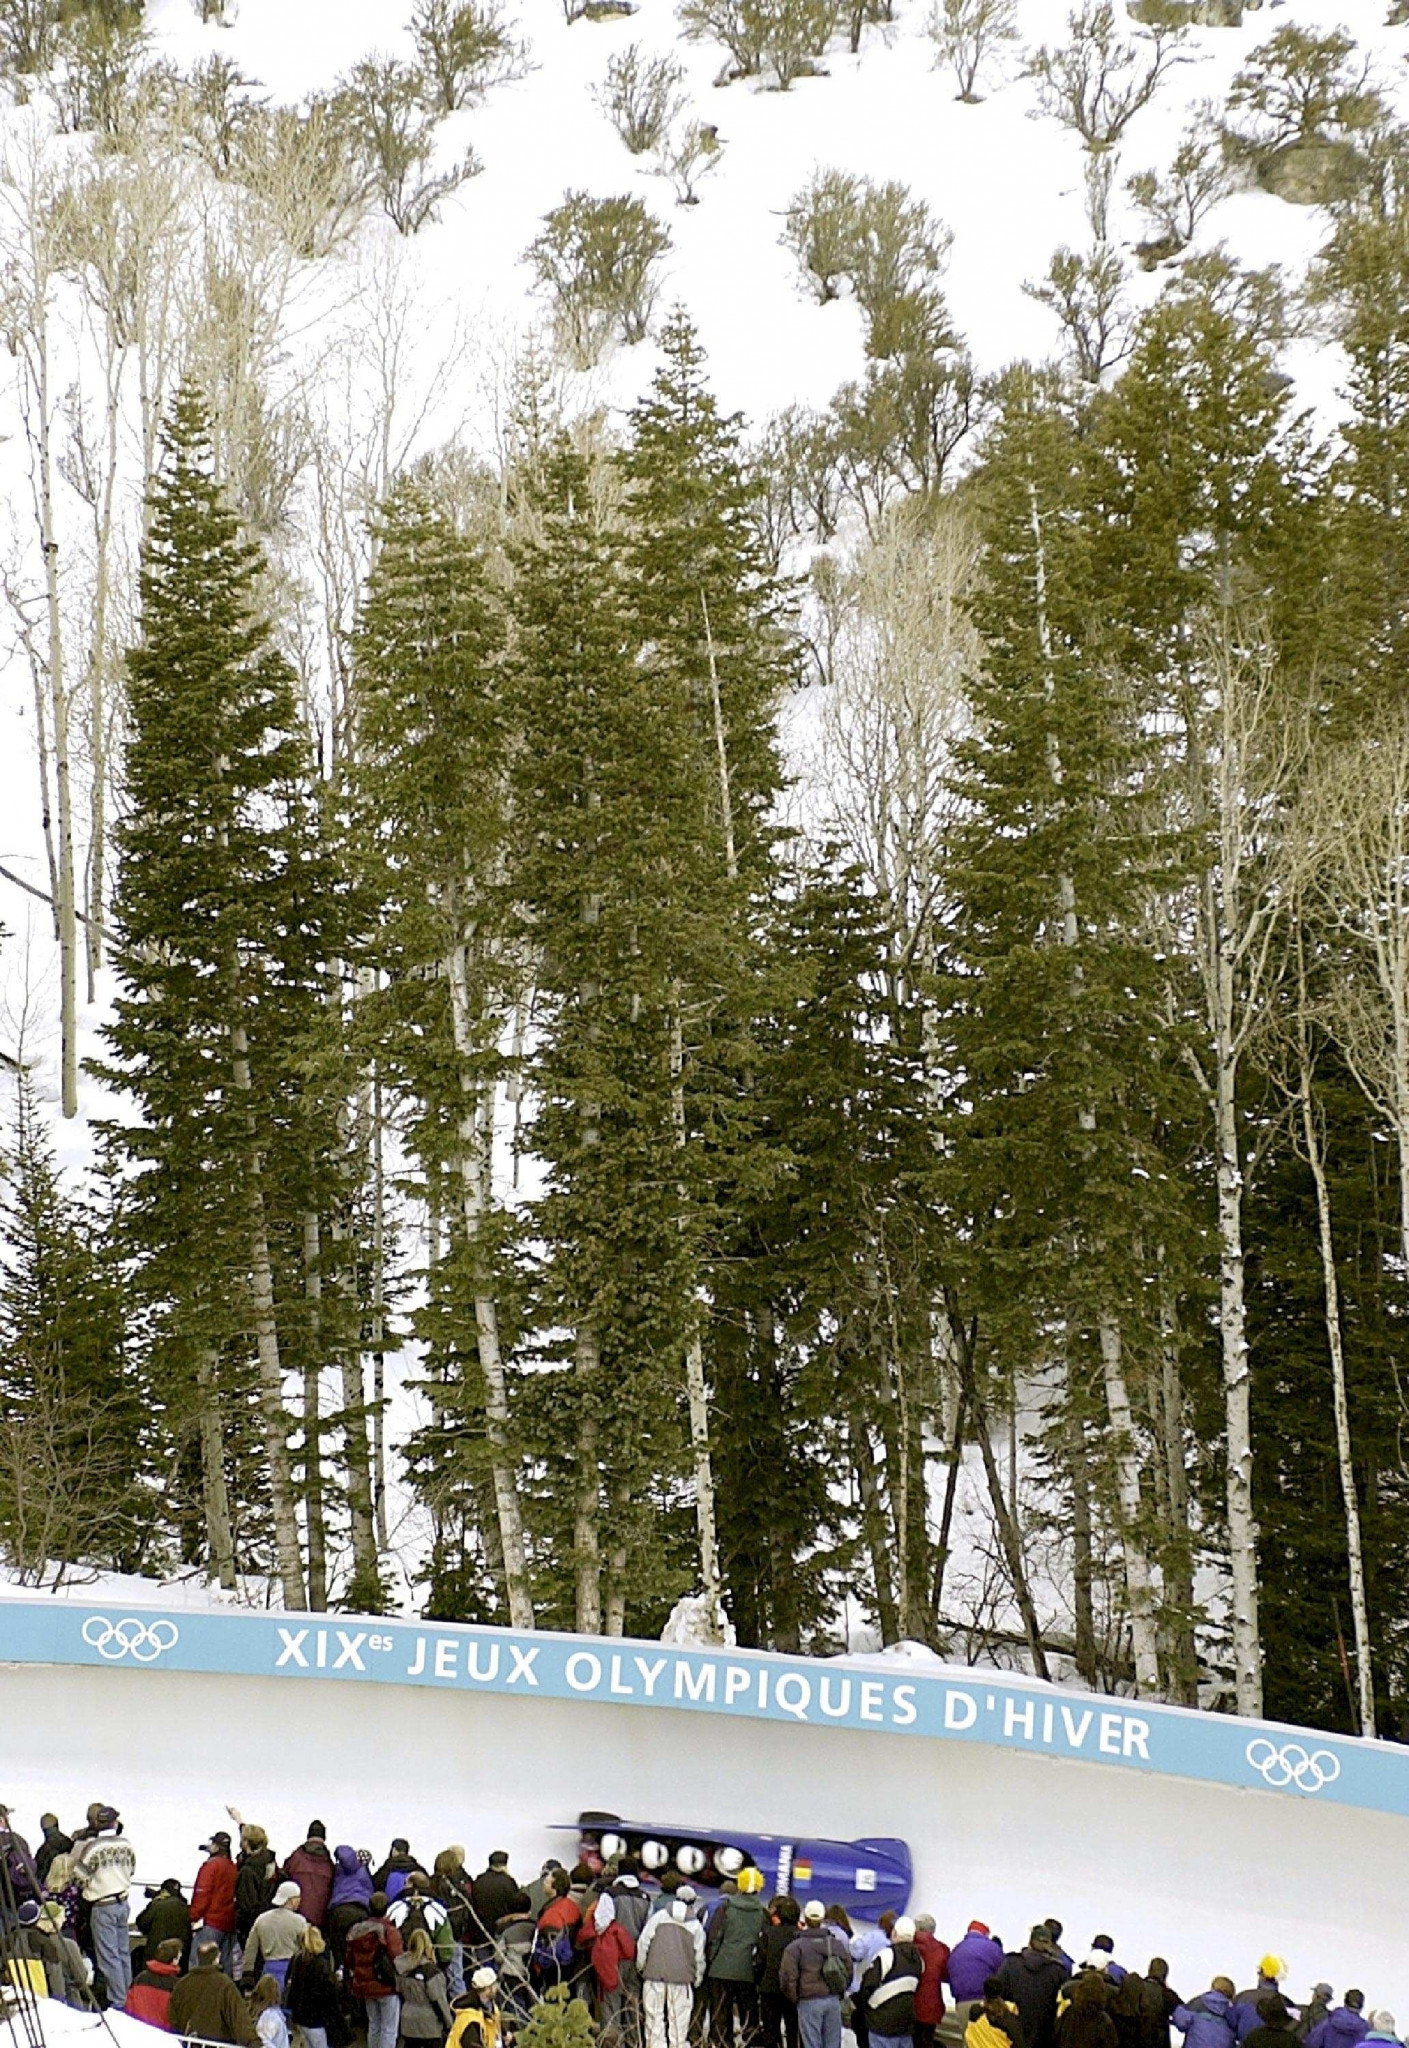 The opening Para Bobsleigh World Cup of the season is taking place on the Park City course in Utah that hosted events for the 2002 Salt Lake City Winter Olympics ©Getty Images